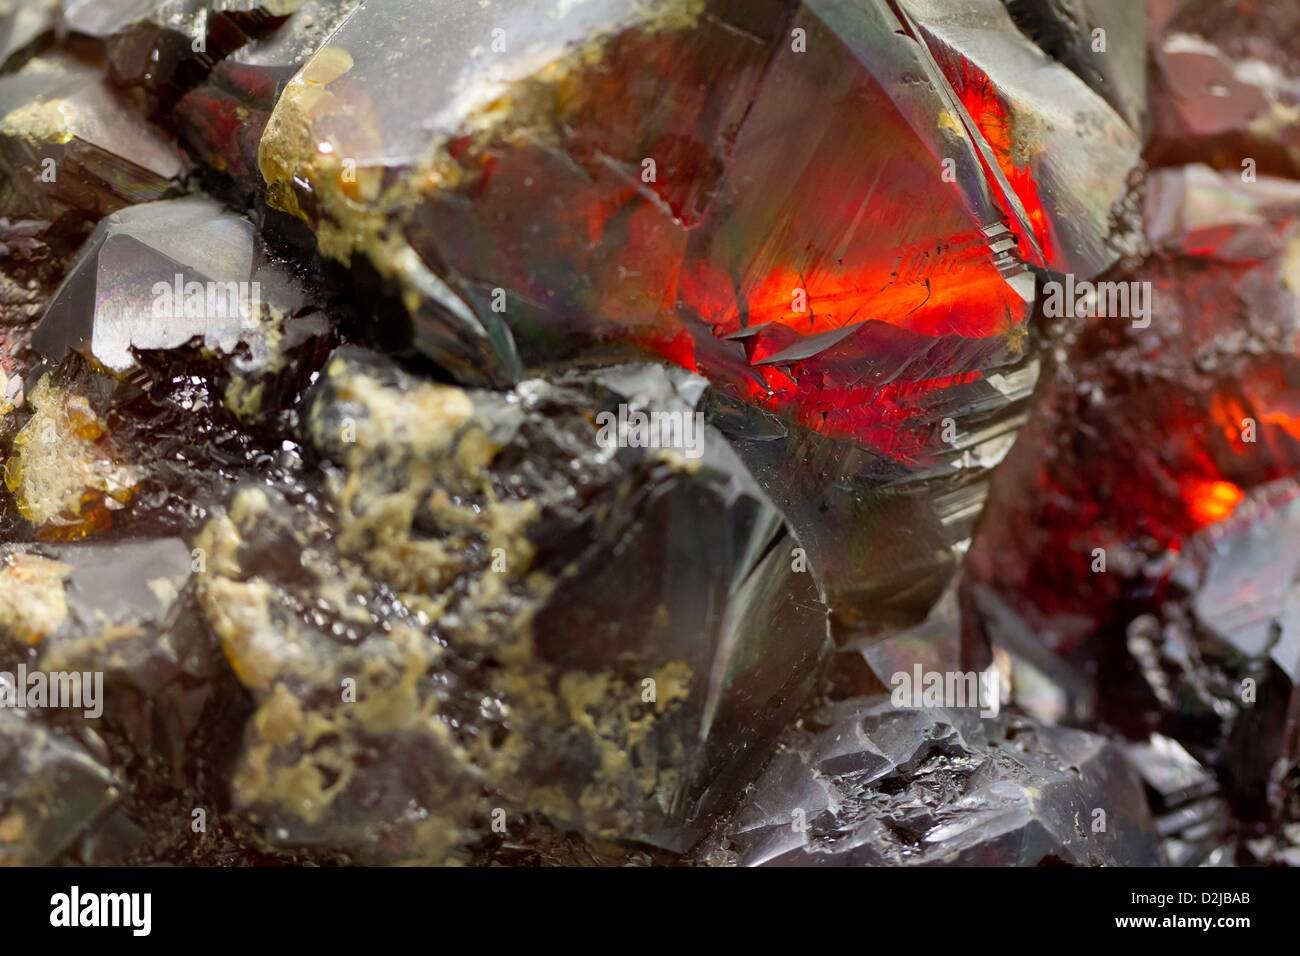 A sphalerite stone is on display at the Mineralogical Collection of the Berlin institute of Technology (TU Berlin) - Stock Image